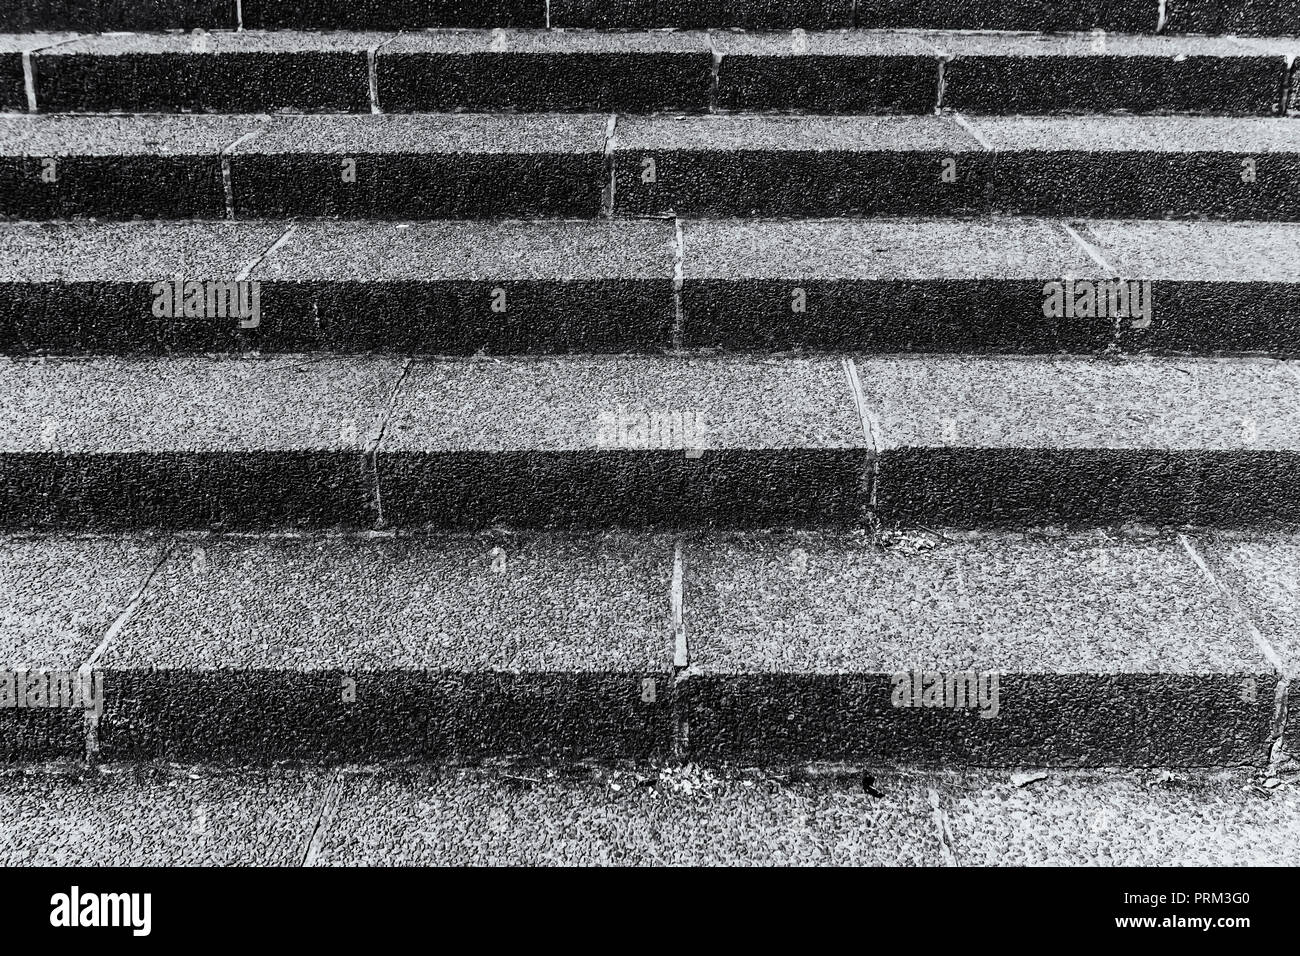 Berlin, Germany, May 29, 2018: Full Frame Close-Up of Staircase - Stock Image